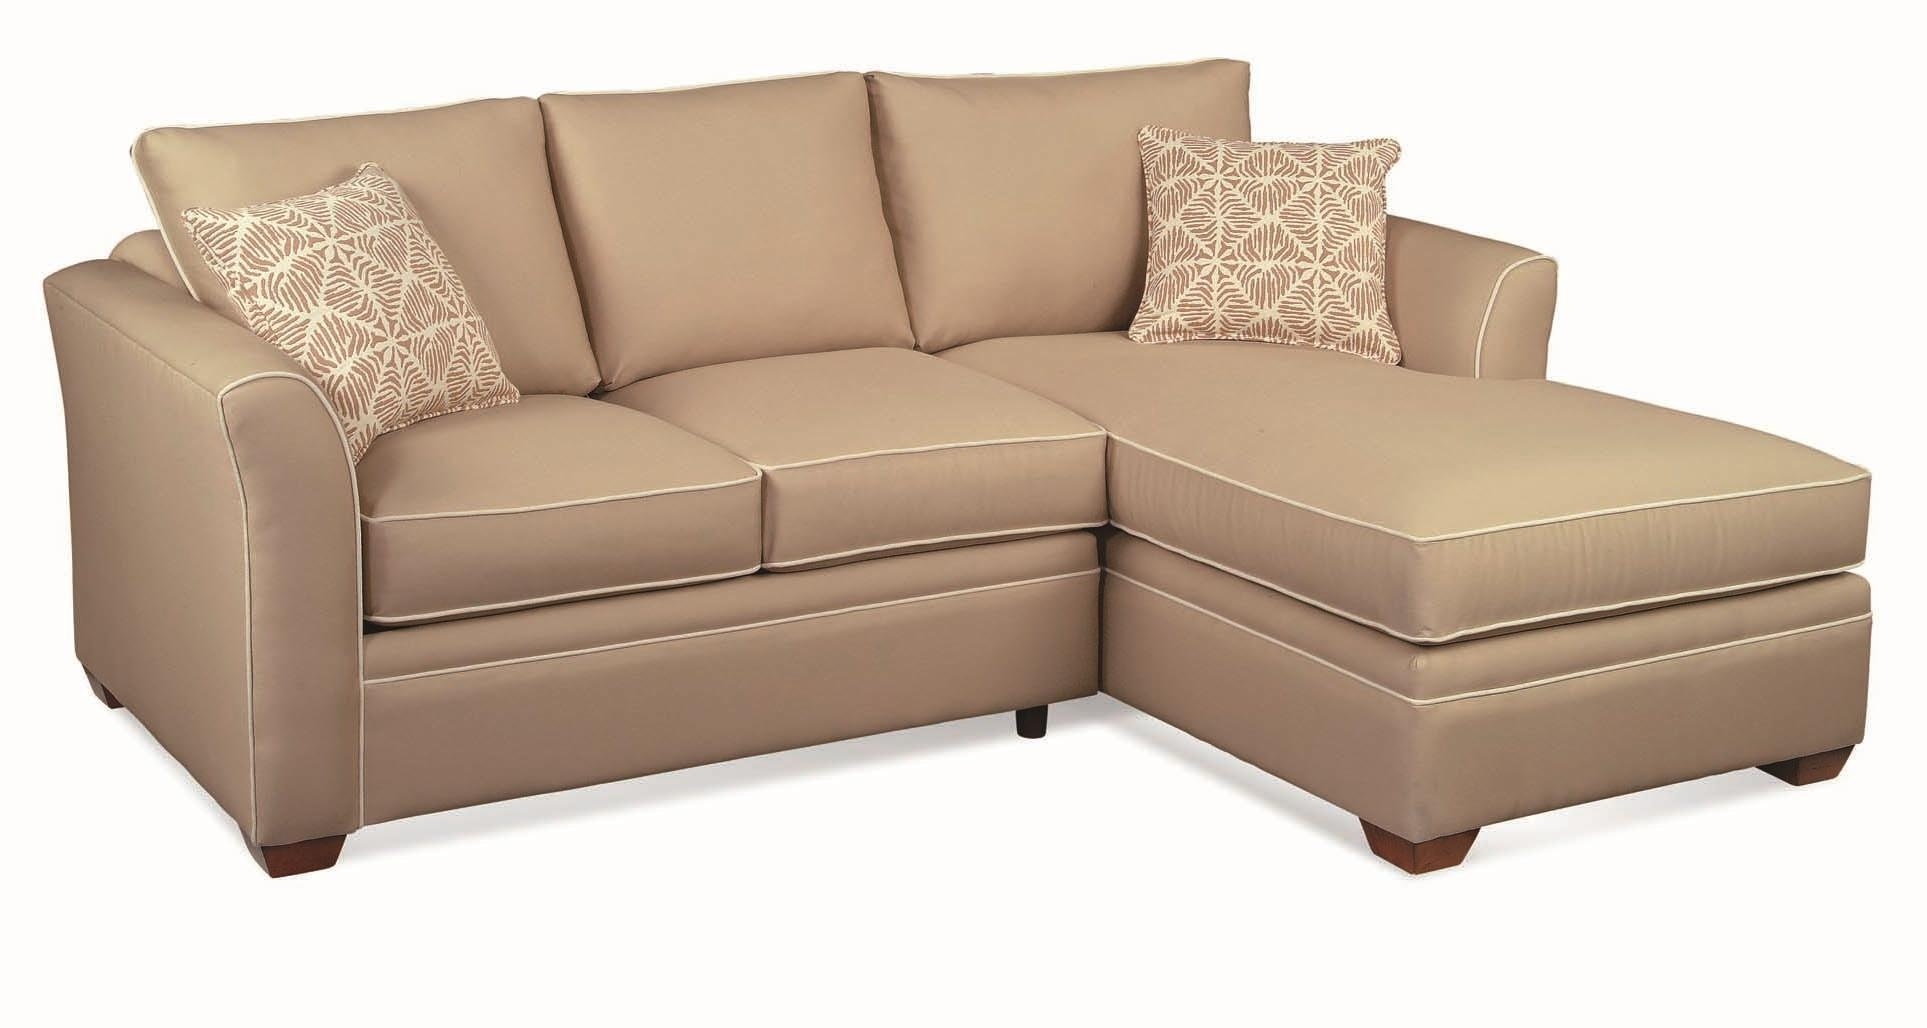 Braxton Culler Bridgeport Casual 2 Piece Sectional Sofa With With Regard To Braxton Culler Sofas (Image 4 of 20)